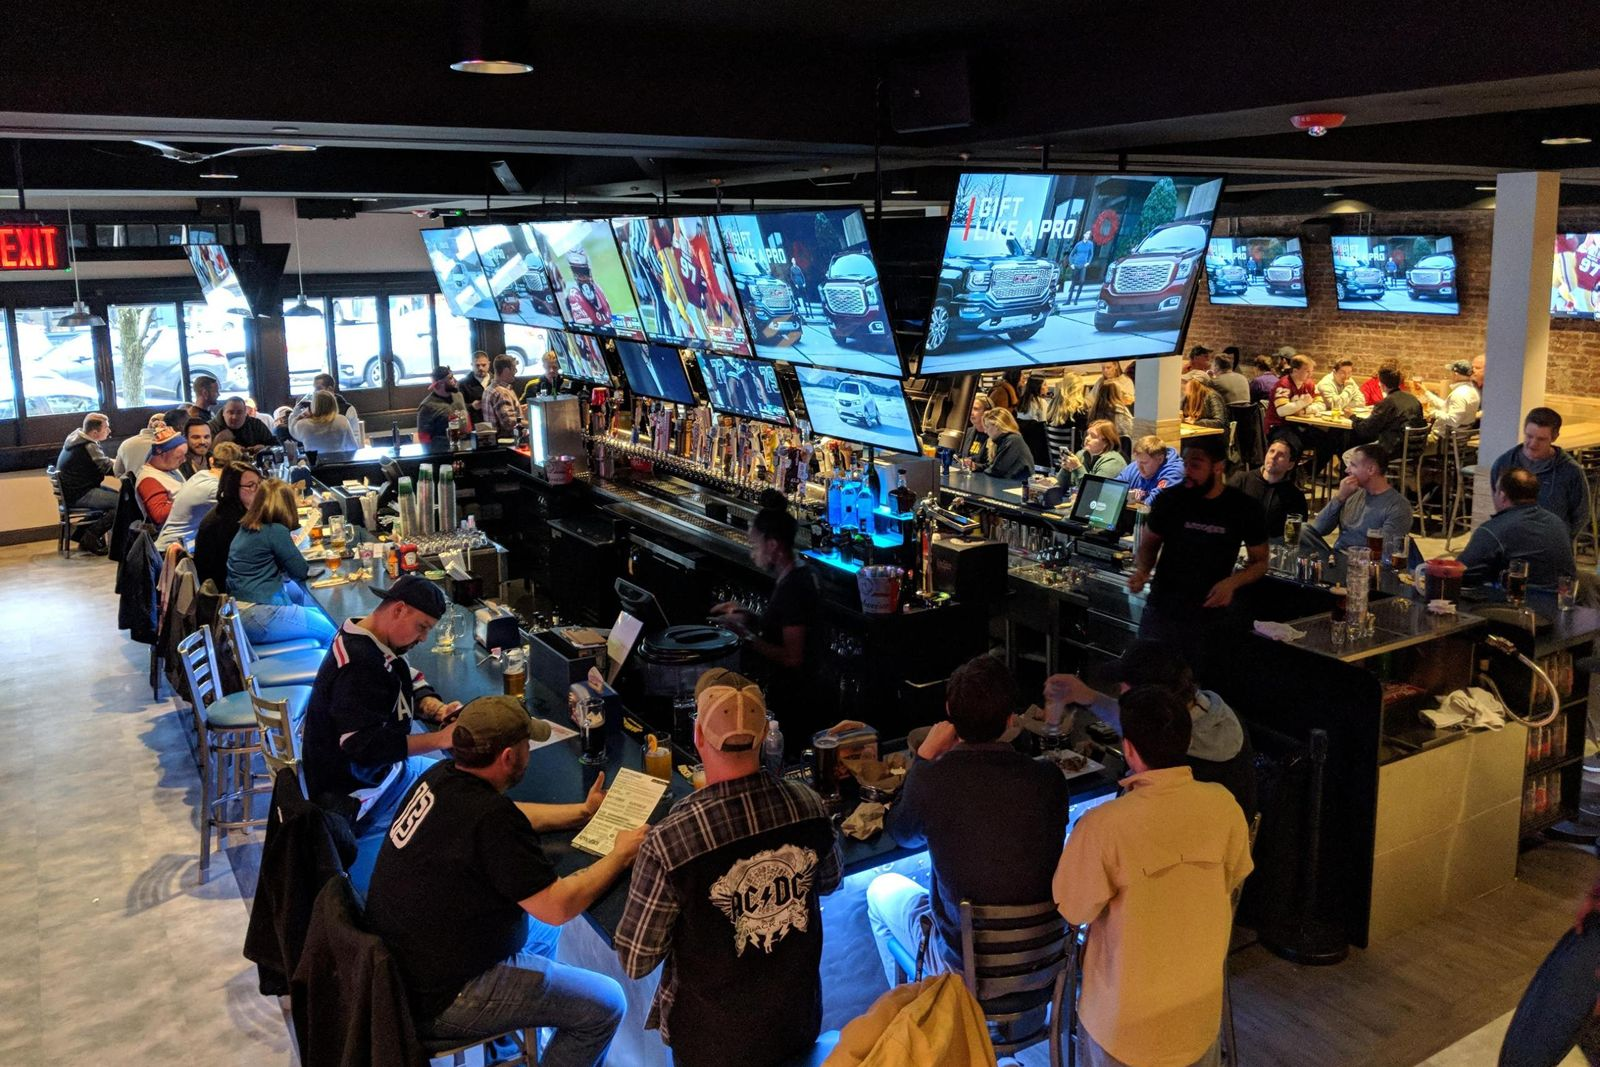 Arooga's Tap & Kitchen in Rockville Centre, NY to Celebrate Grand Opening December 1st